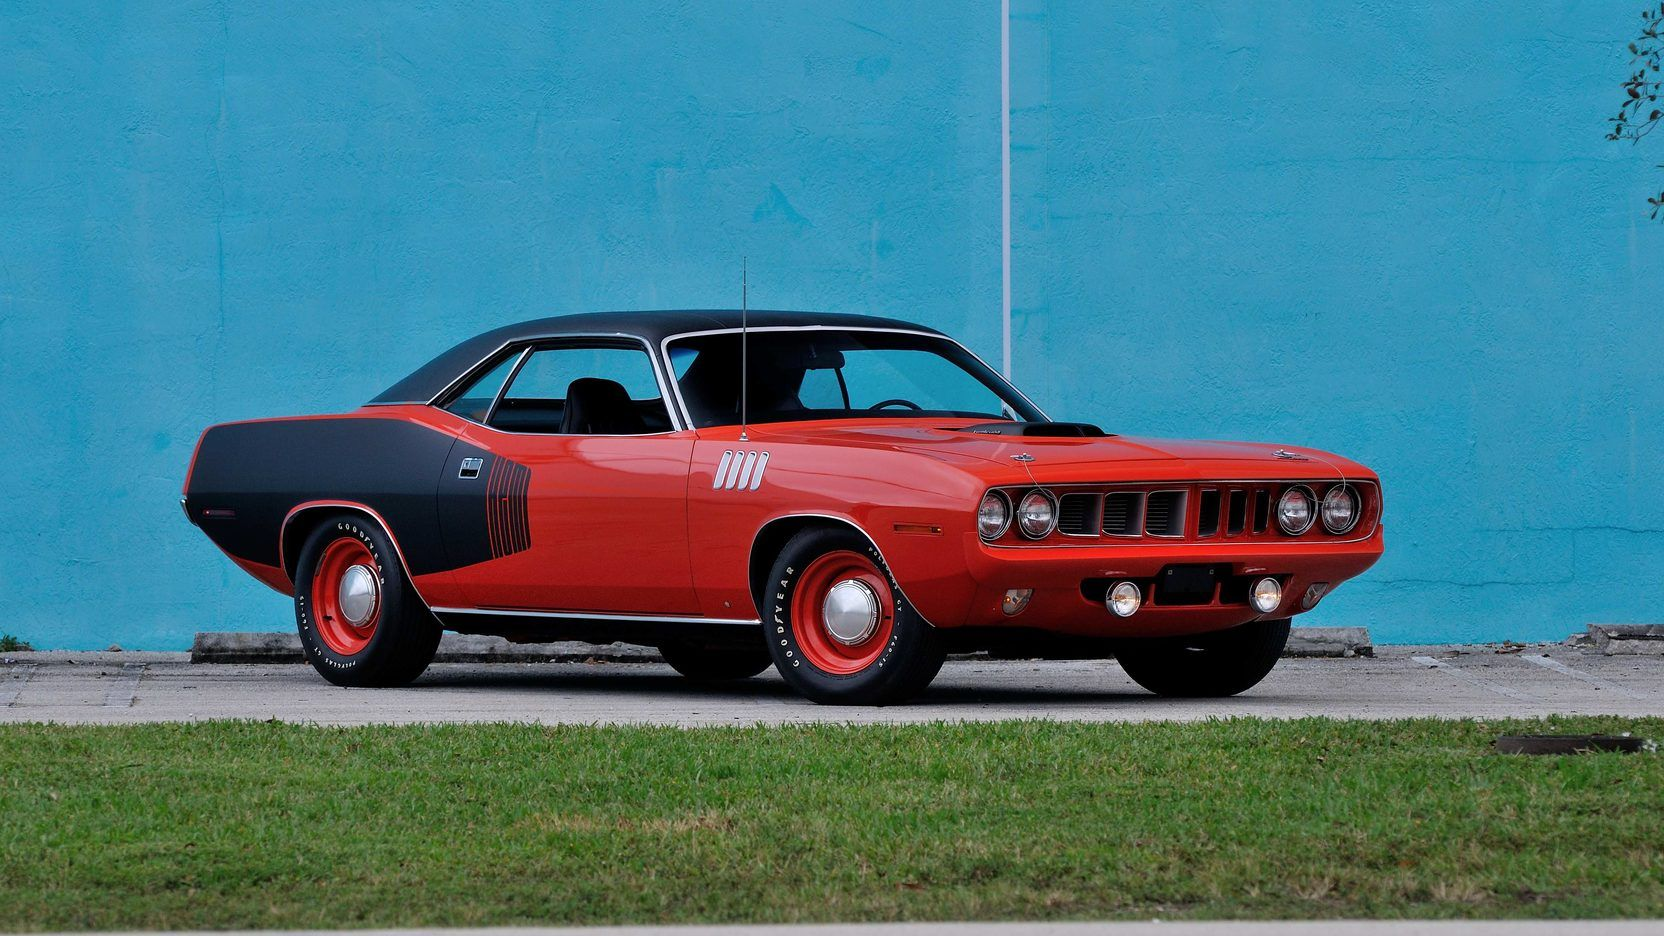 These Are The 10 Most Desirable Classic Muscle Cars From The 1960s And 70s